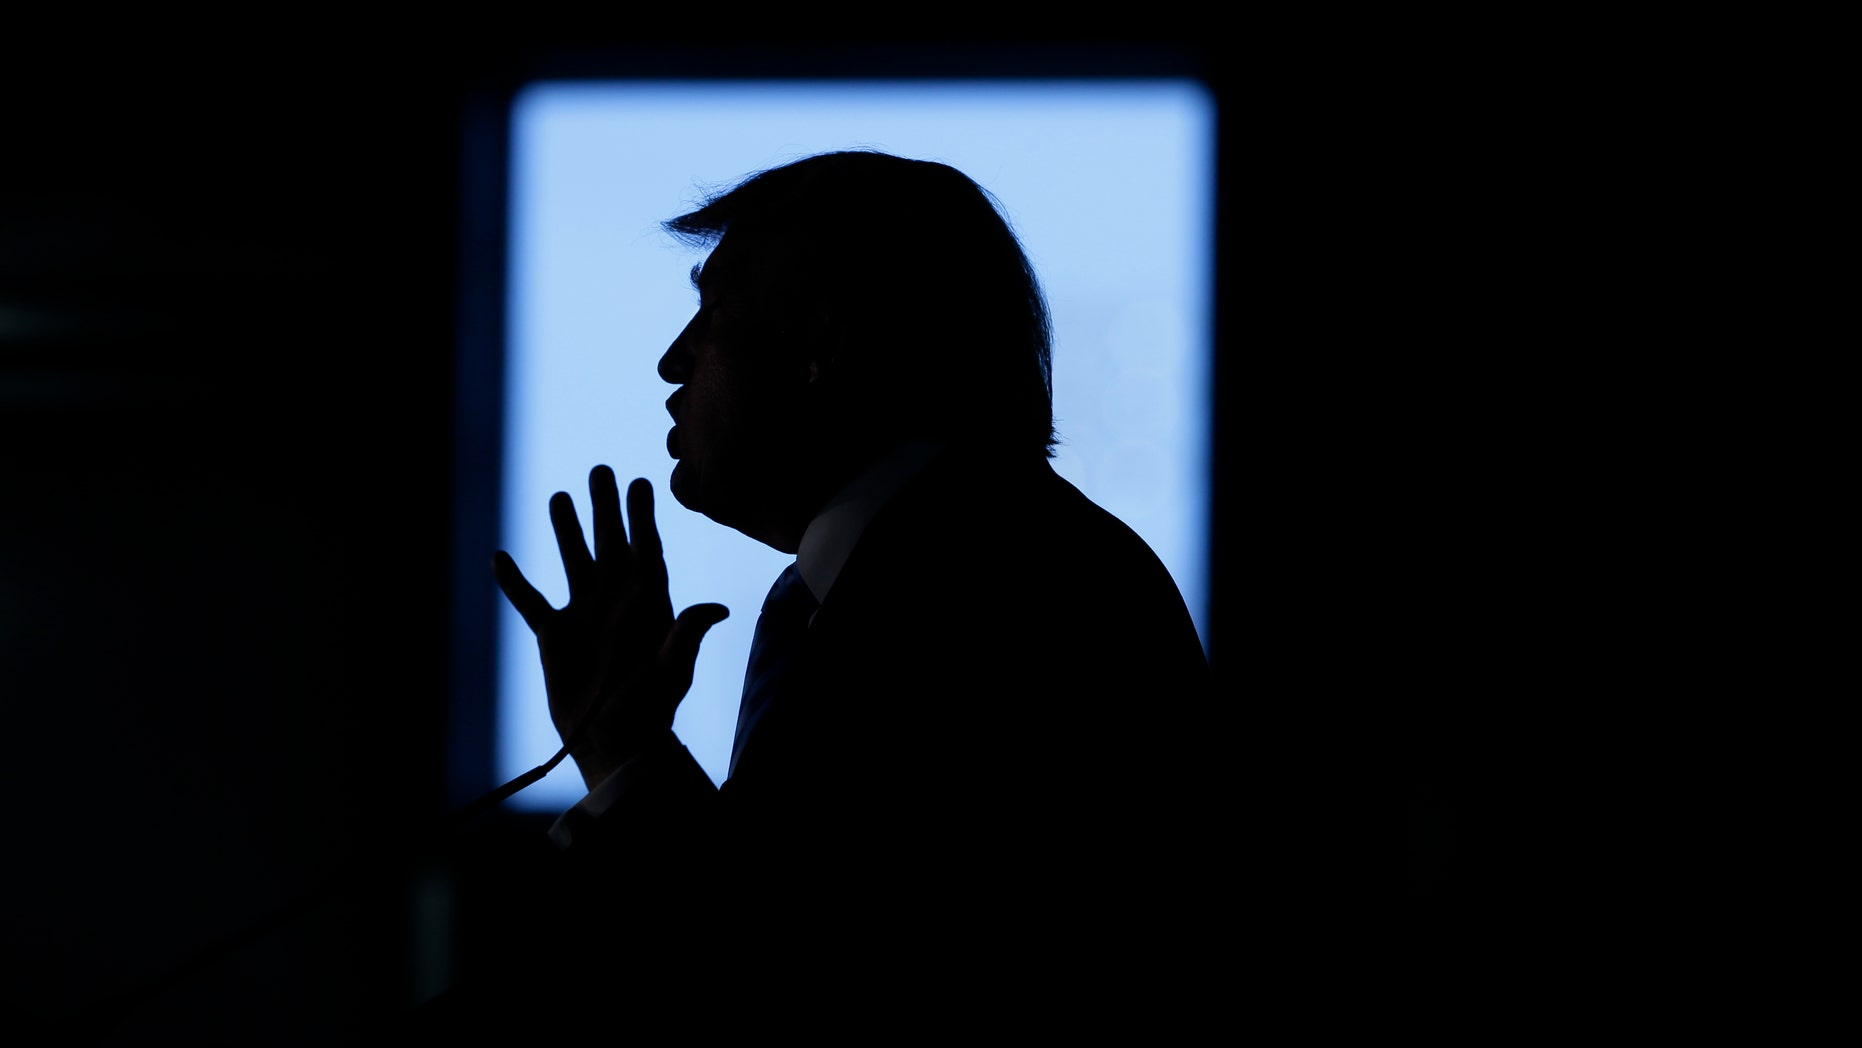 Republican presidential candidate Donald Trump speaks during a campaign rally Saturday, Dec. 5, 2015, in Davenport, Iowa. (AP Photo/Charlie Neibergall)